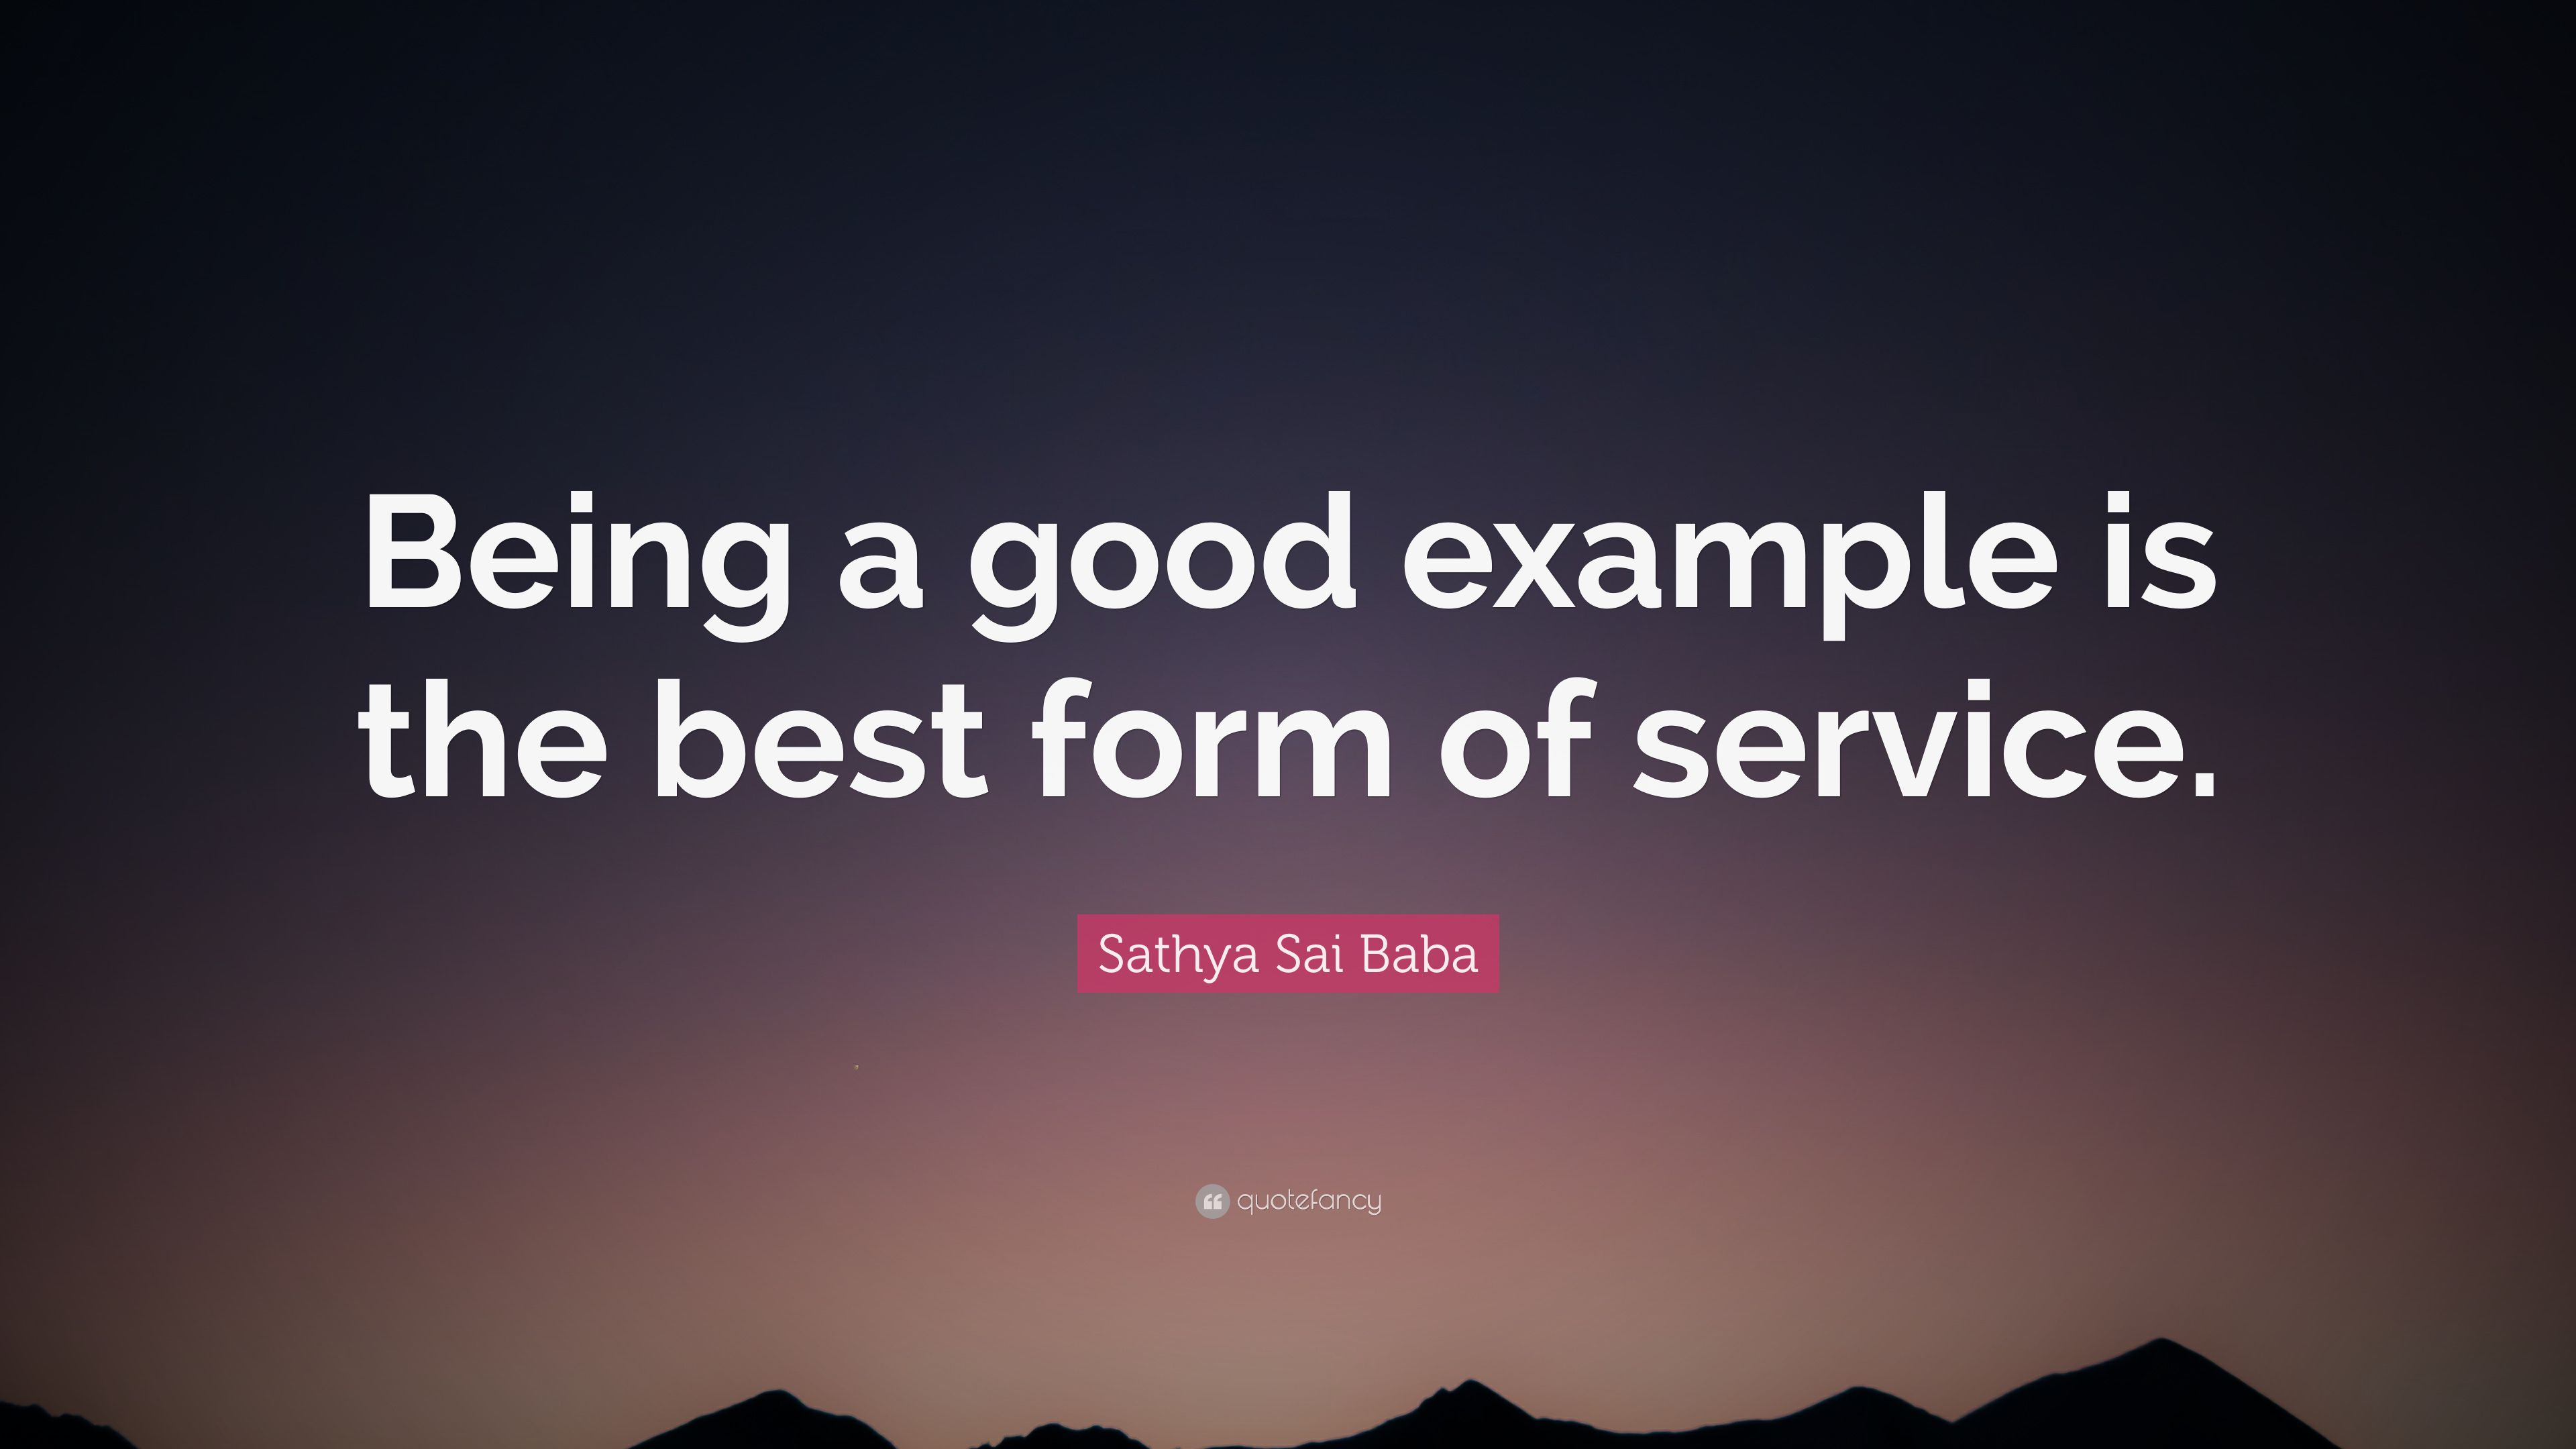 Sathya Sai Baba Quote Being A Good Example Is The Best Form Of